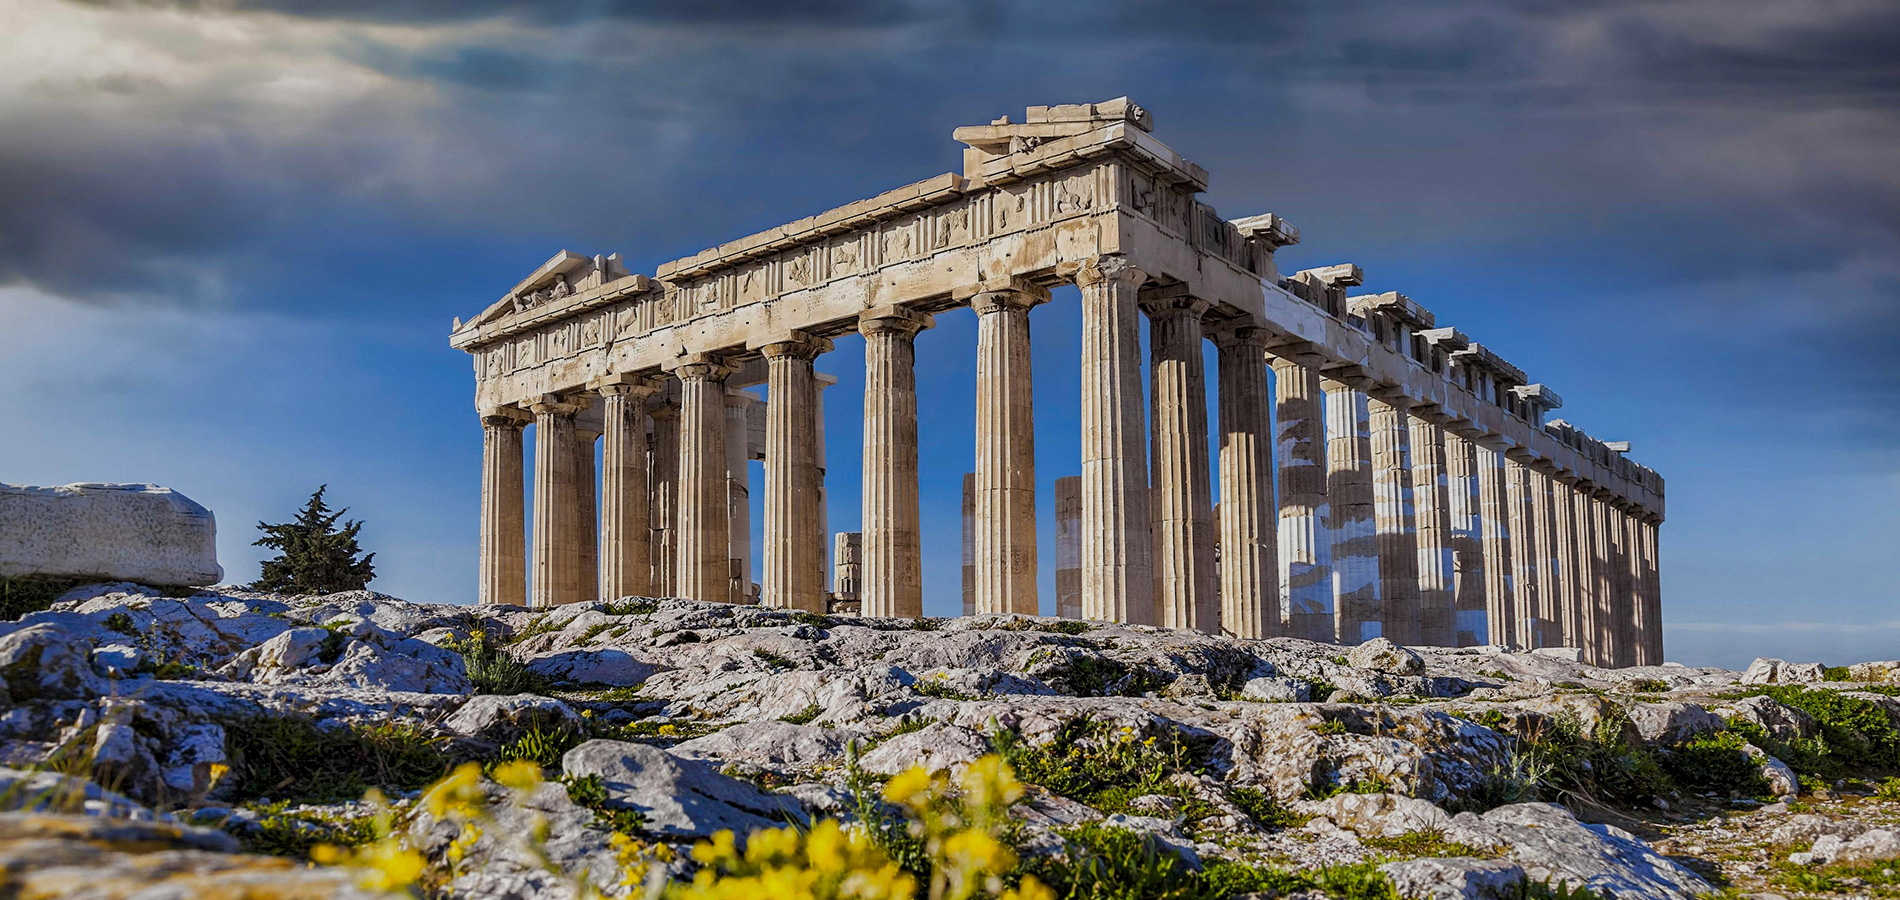 acropolis-parthenon-temple